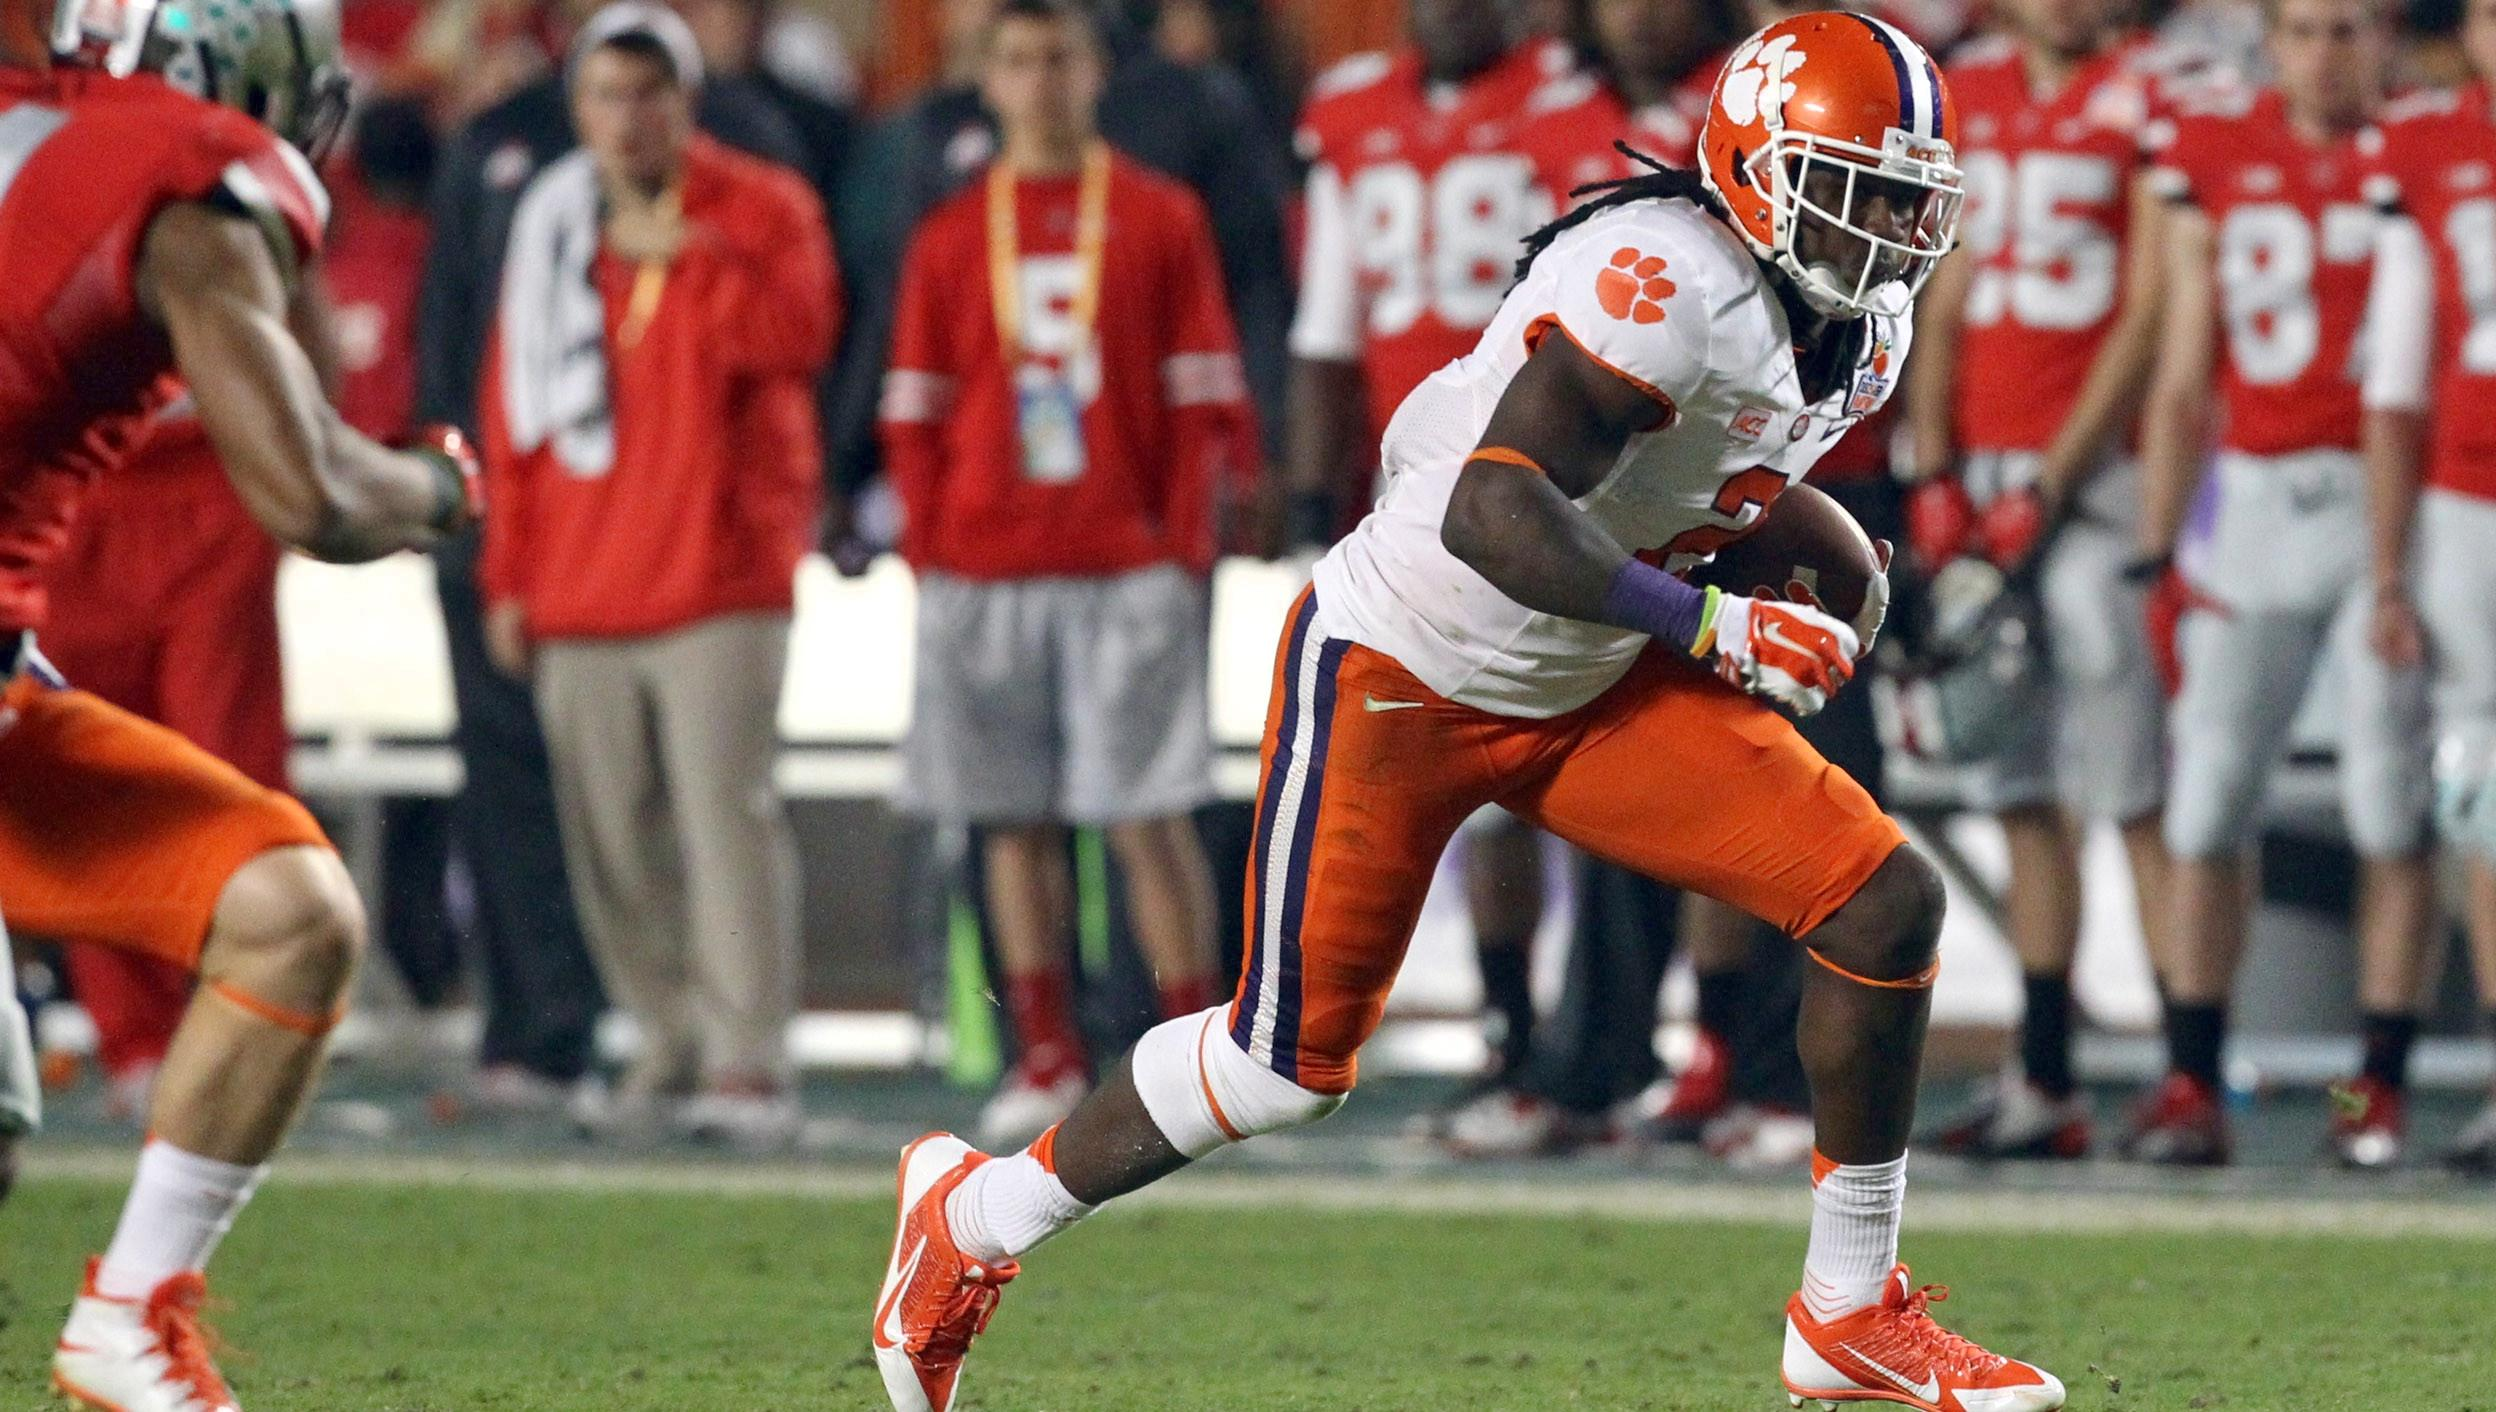 AgSouth Homegrown Athlete of the Week – Sammy Watkins